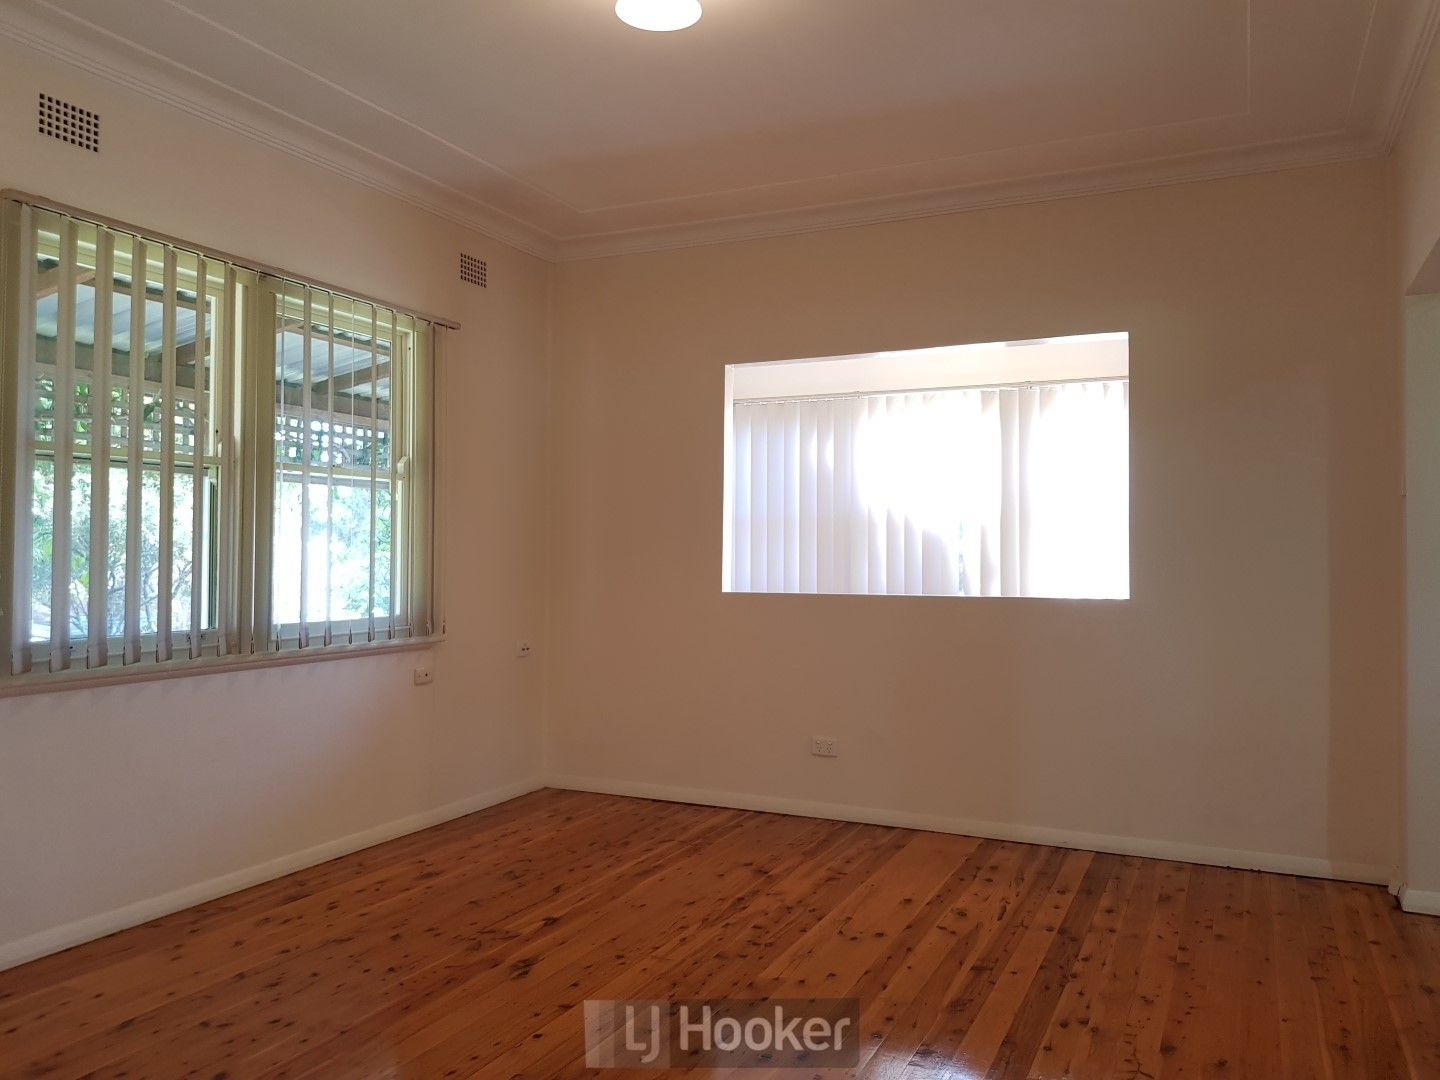 2 Fourth Street, Booragul NSW 2284, Image 2